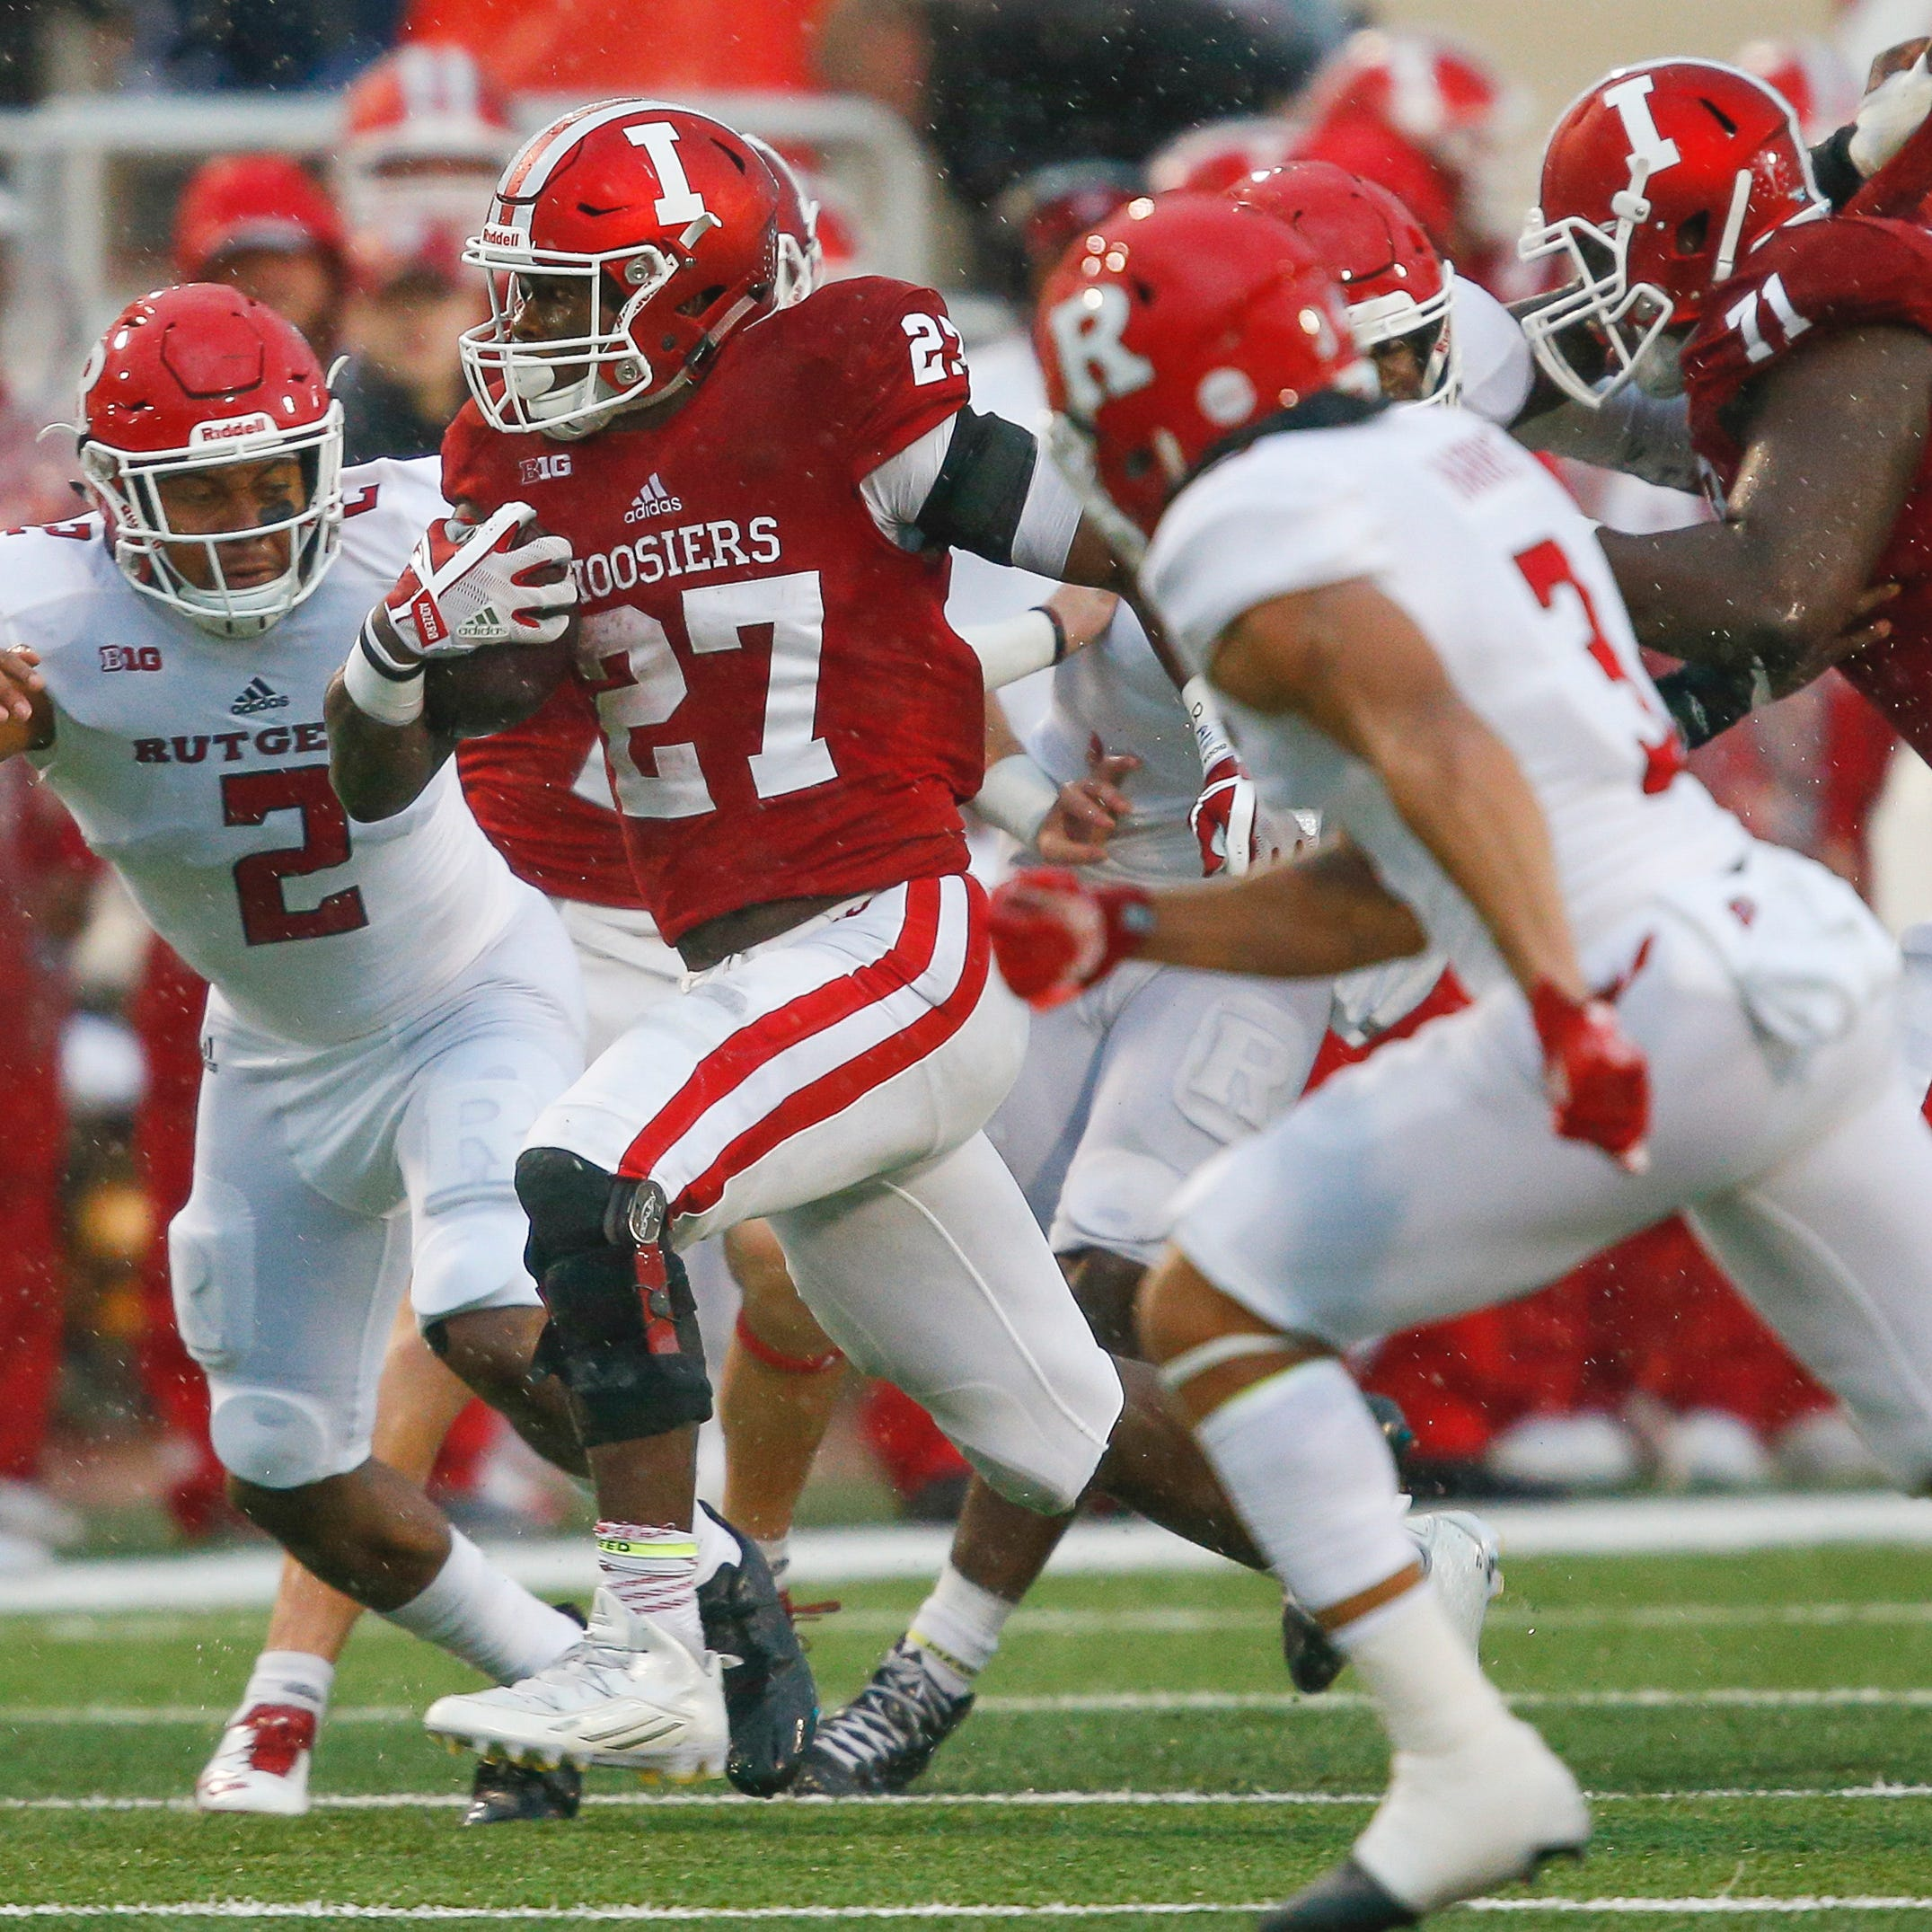 IU football player Morgan Ellison suspended 2-1/2 years in sexual assault case